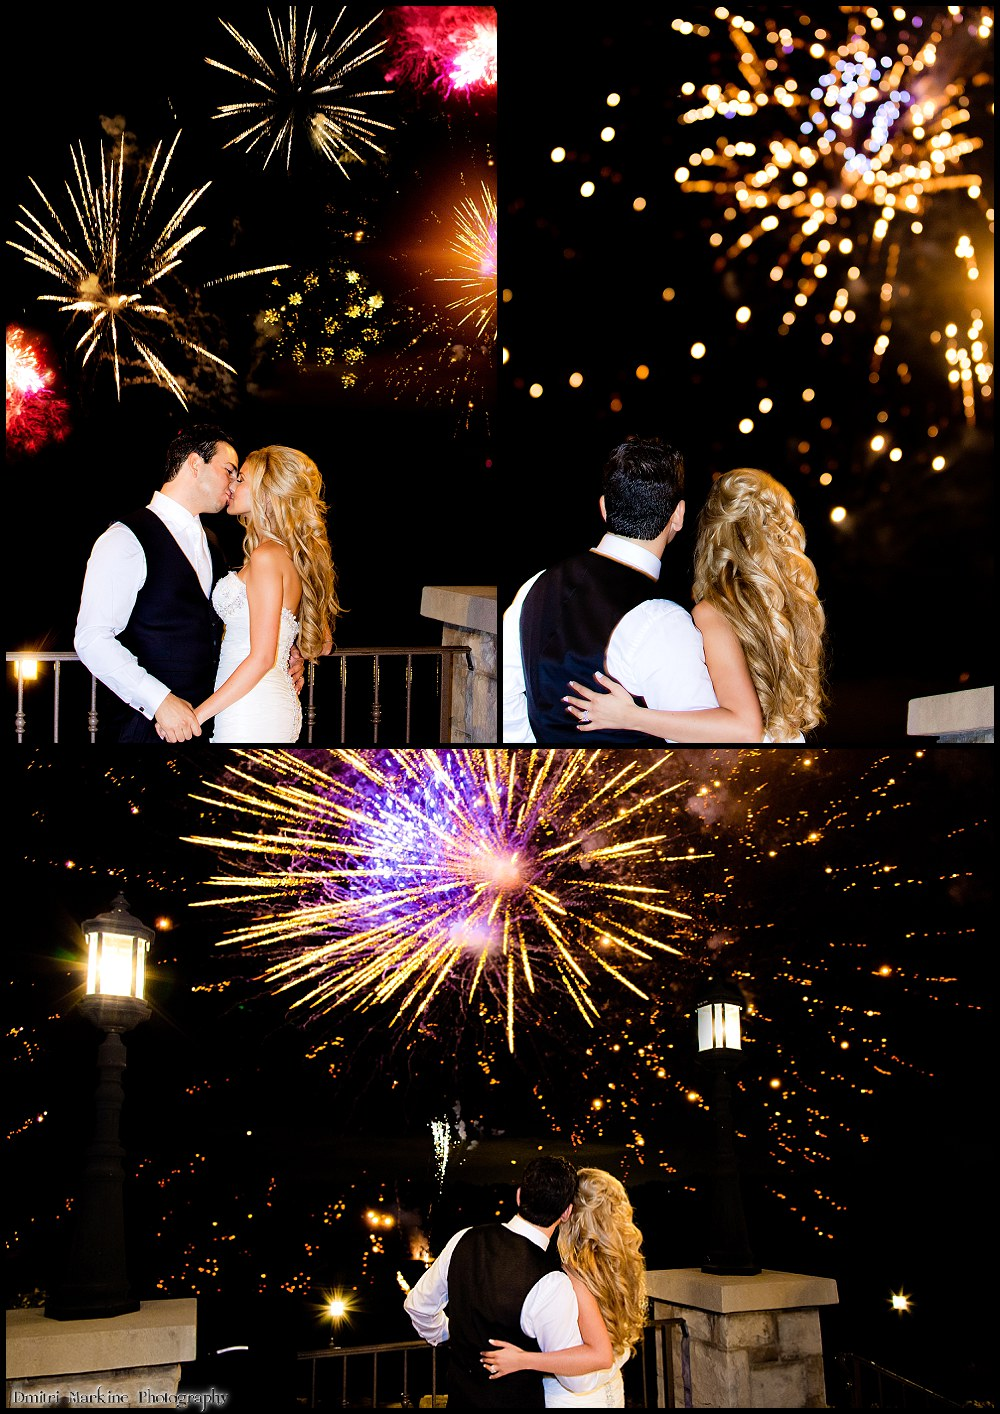 wedding fireworks at Copper Creek Golf Club wedding